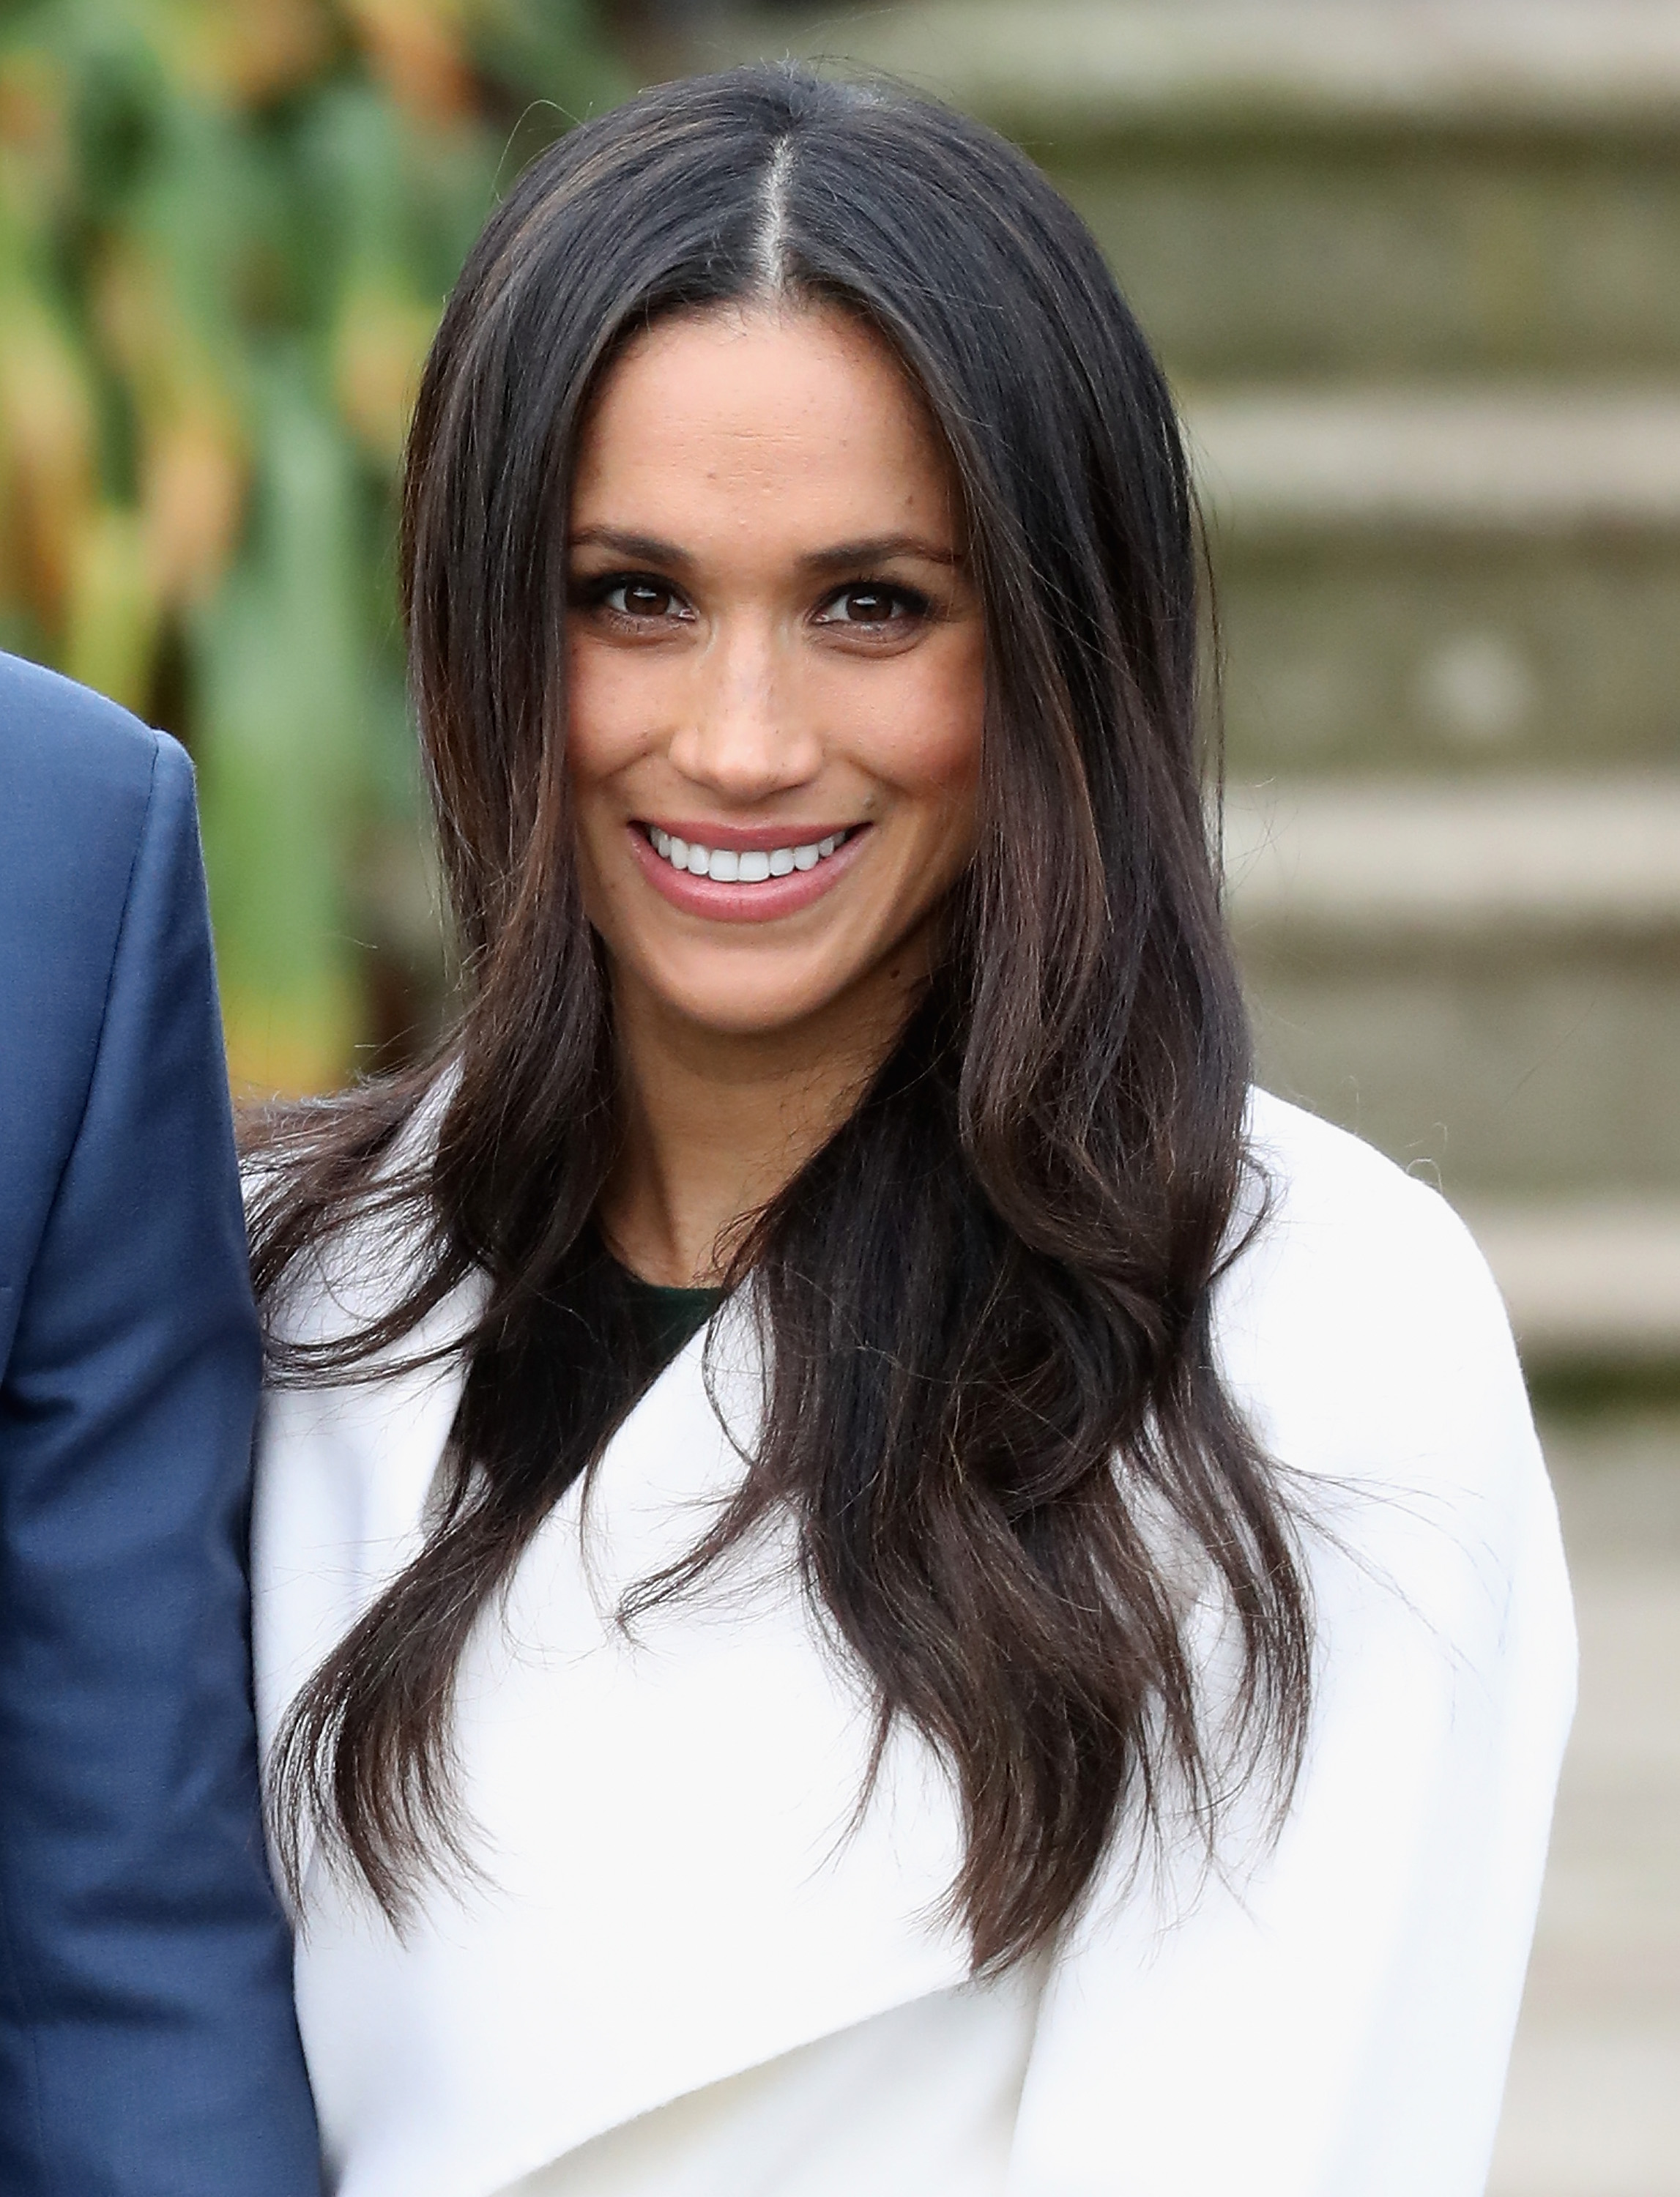 Meghan Markles Engagement Hairstyle Is Perfect For 2018 HelloGiggles